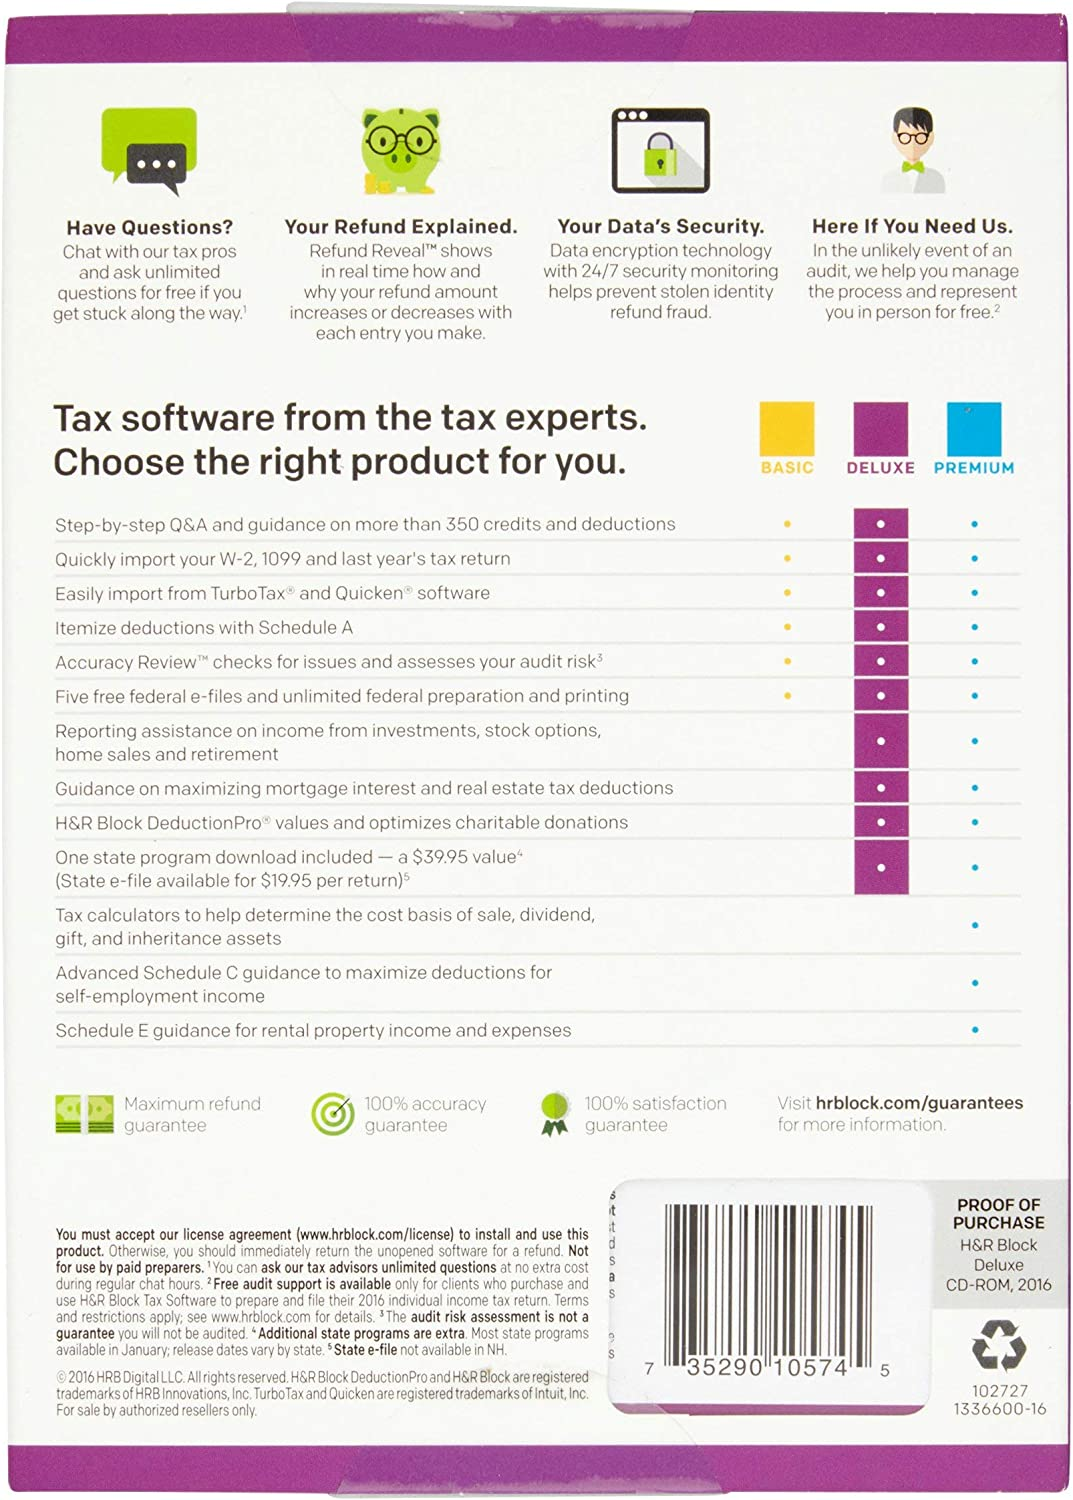 HR Block(R) Deluxe + State 2016 Tax Software, For PC/Mac, Traditional Disc